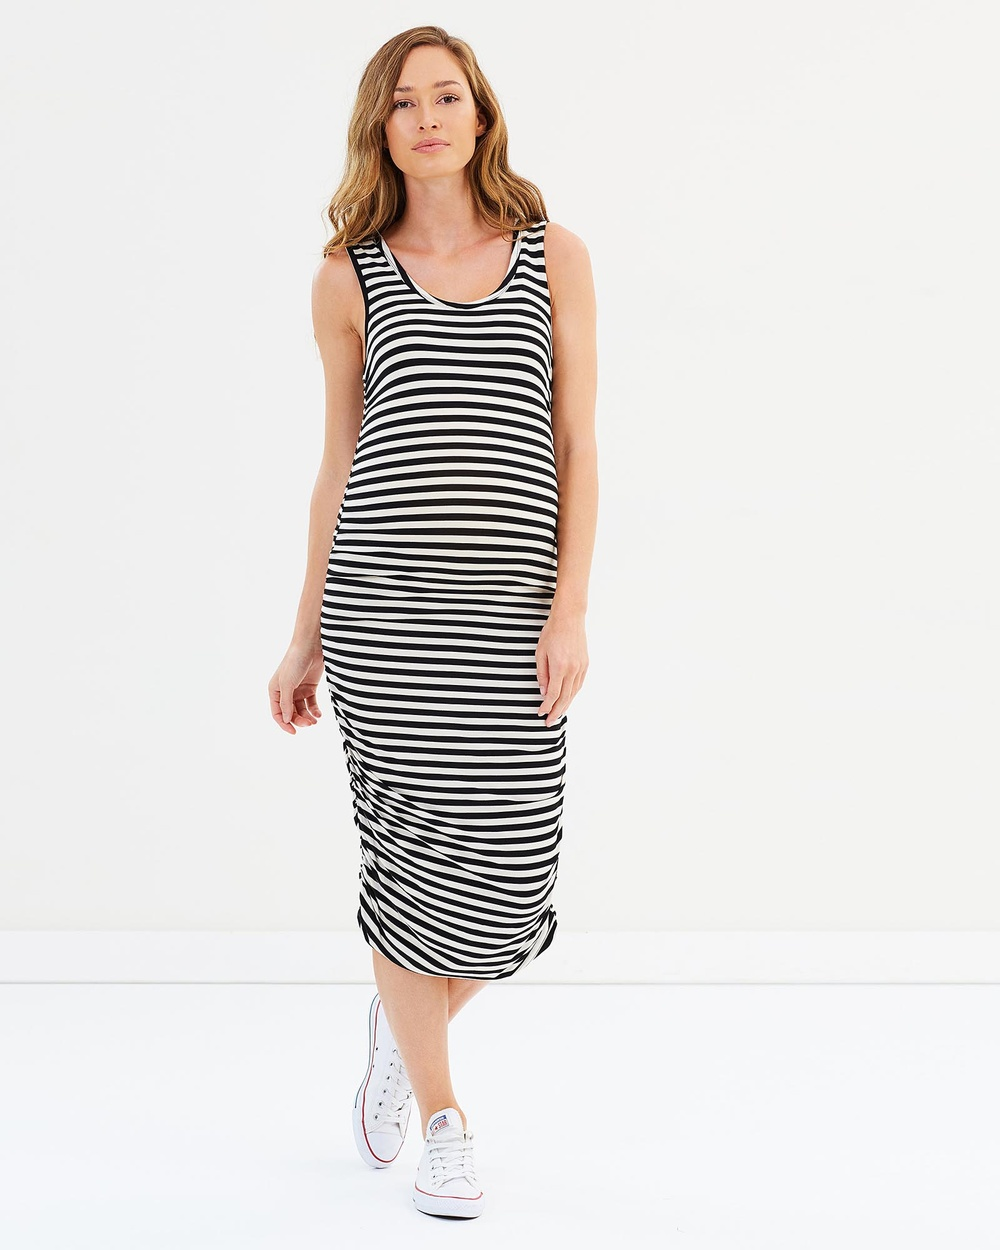 Bamboo Body Ruched Tank Dress Dresses Black, White Ruched Tank Dress